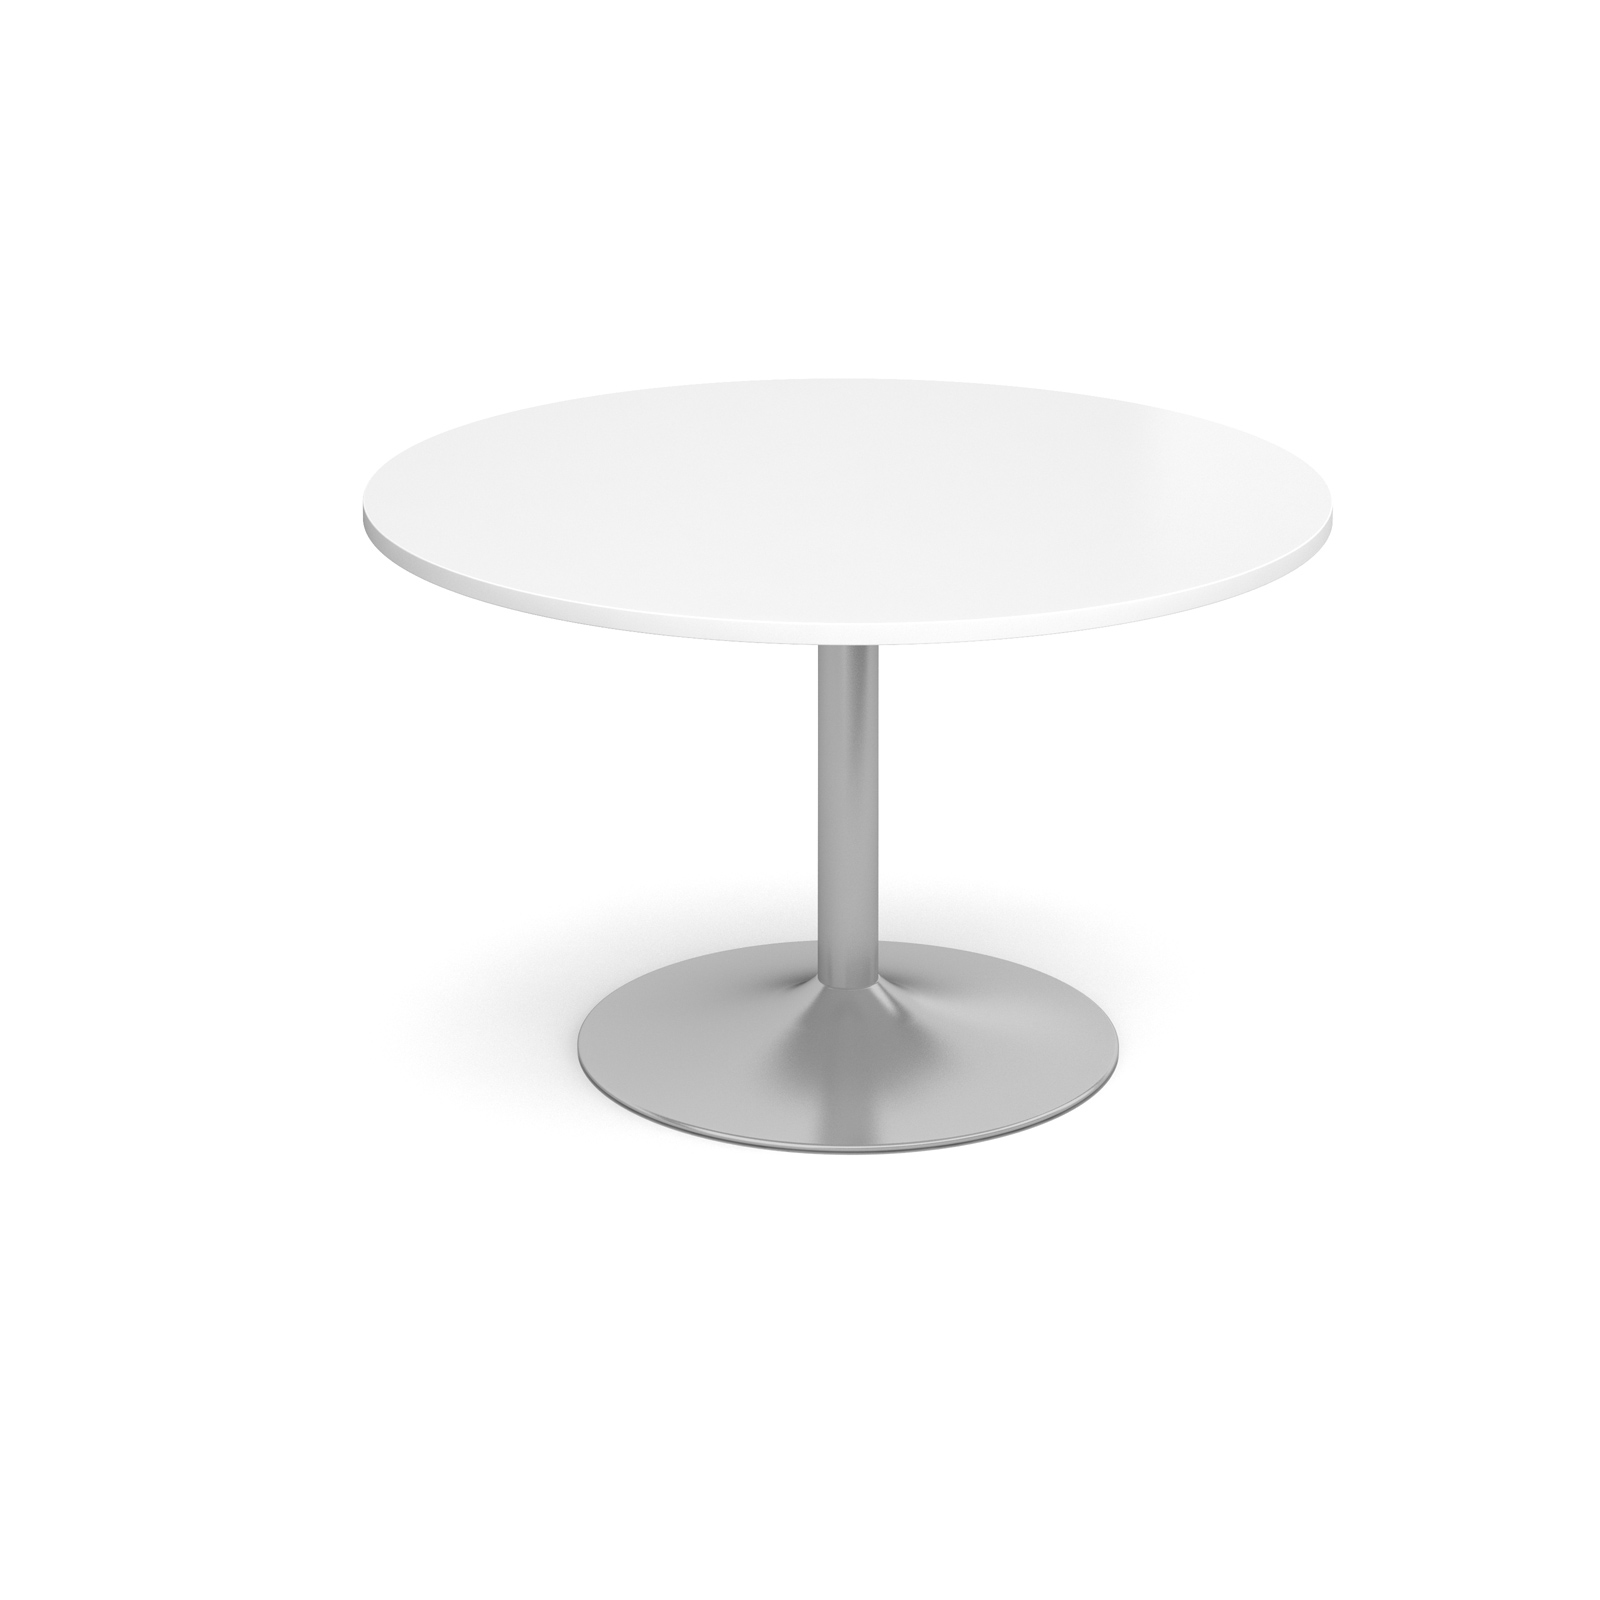 1200 Dia Circular Trumpet Base Boardroom Table 25mm Top - White